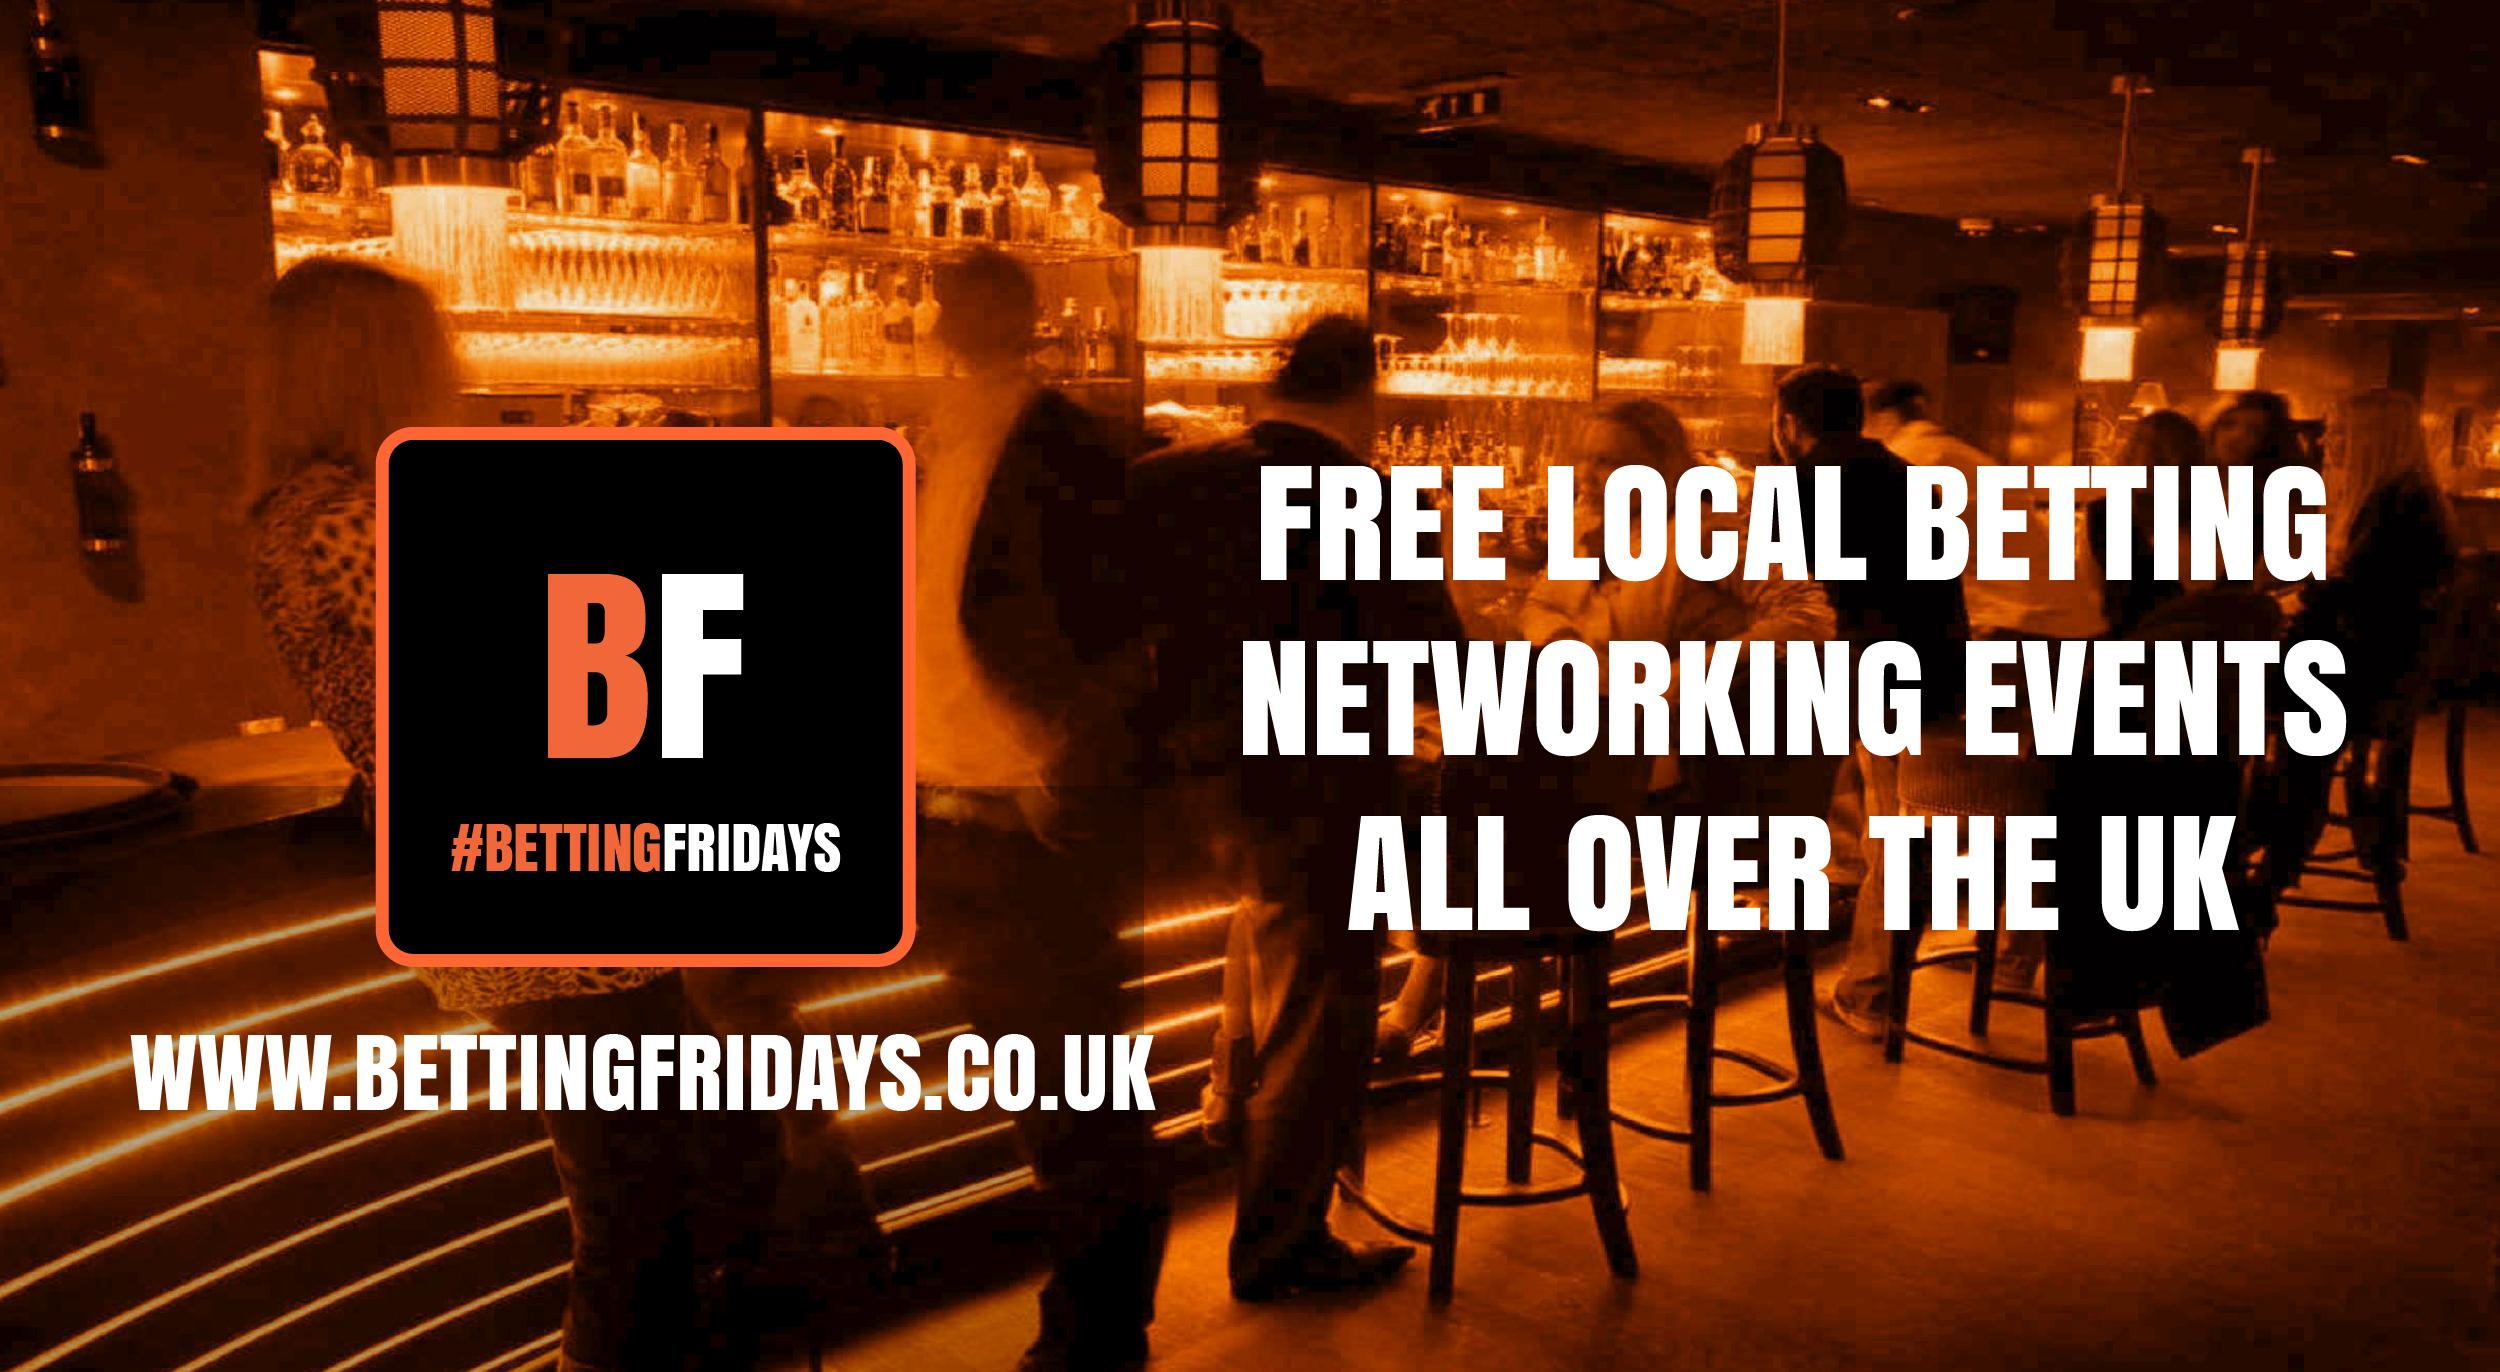 Betting Fridays! Free betting networking event in Chesterfield